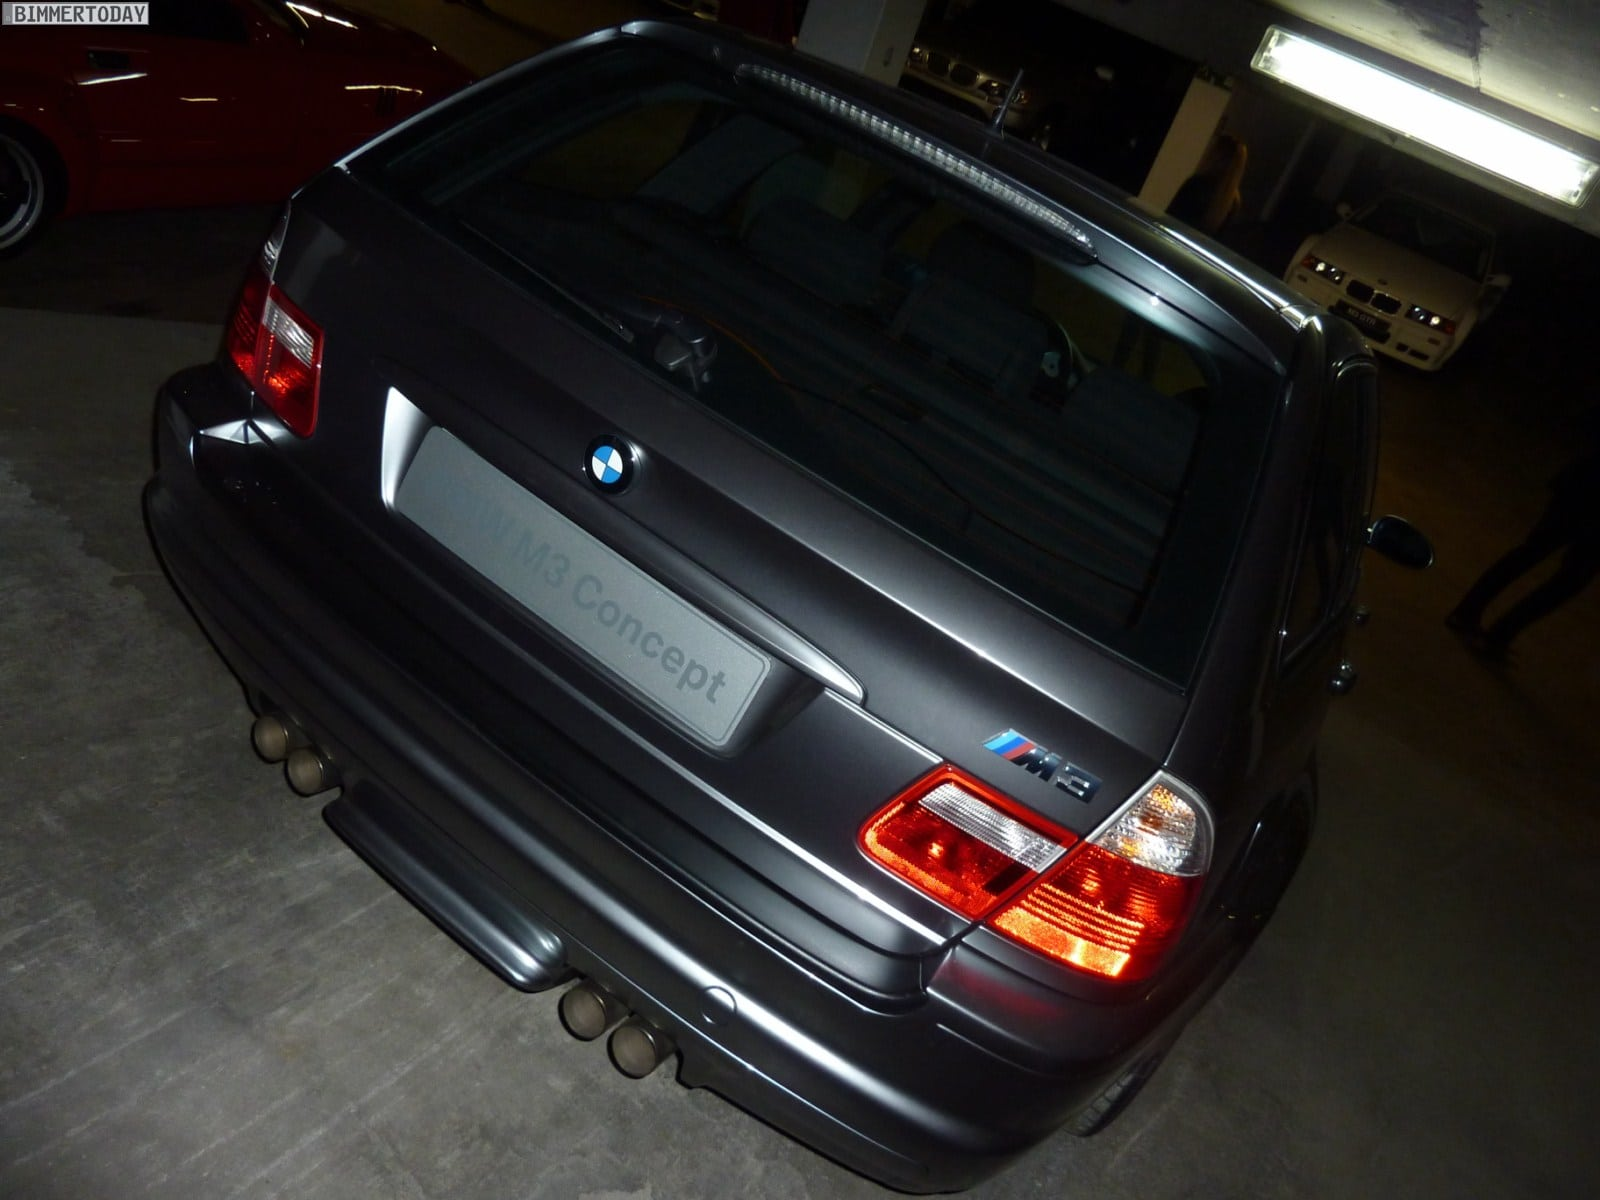 BMW 3 Series E46 M3 Touring